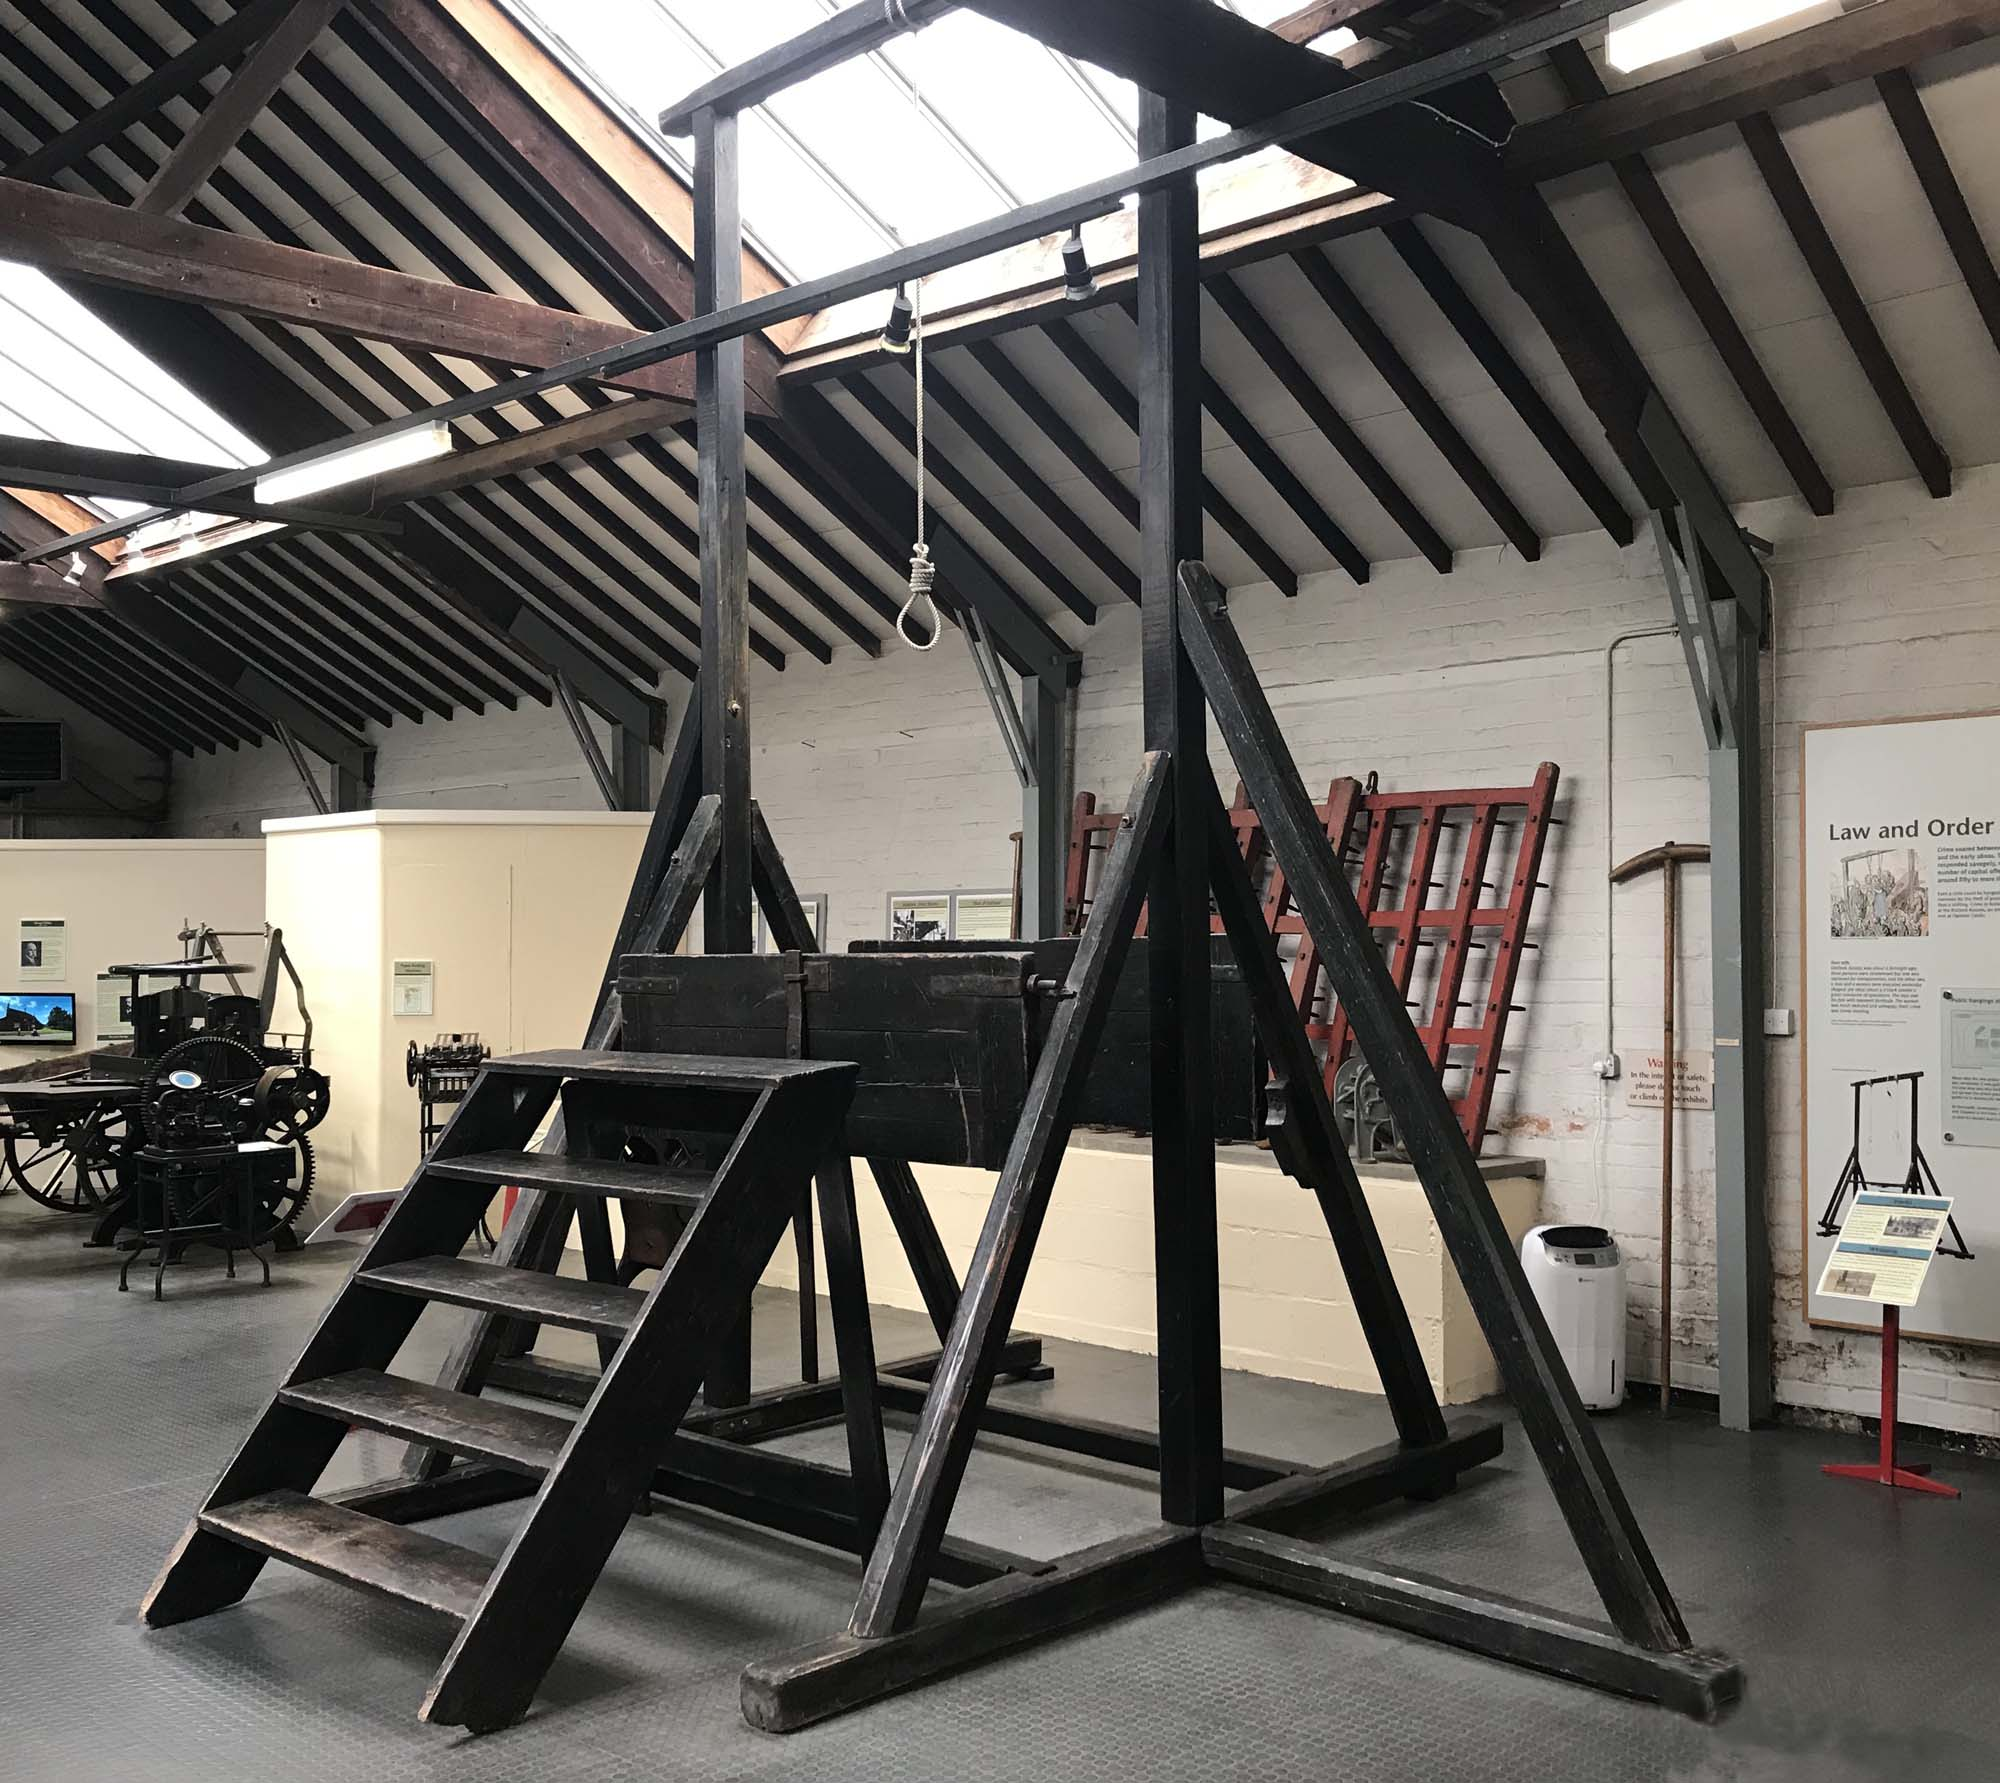 a photo of a wooden gallows in museum gallery